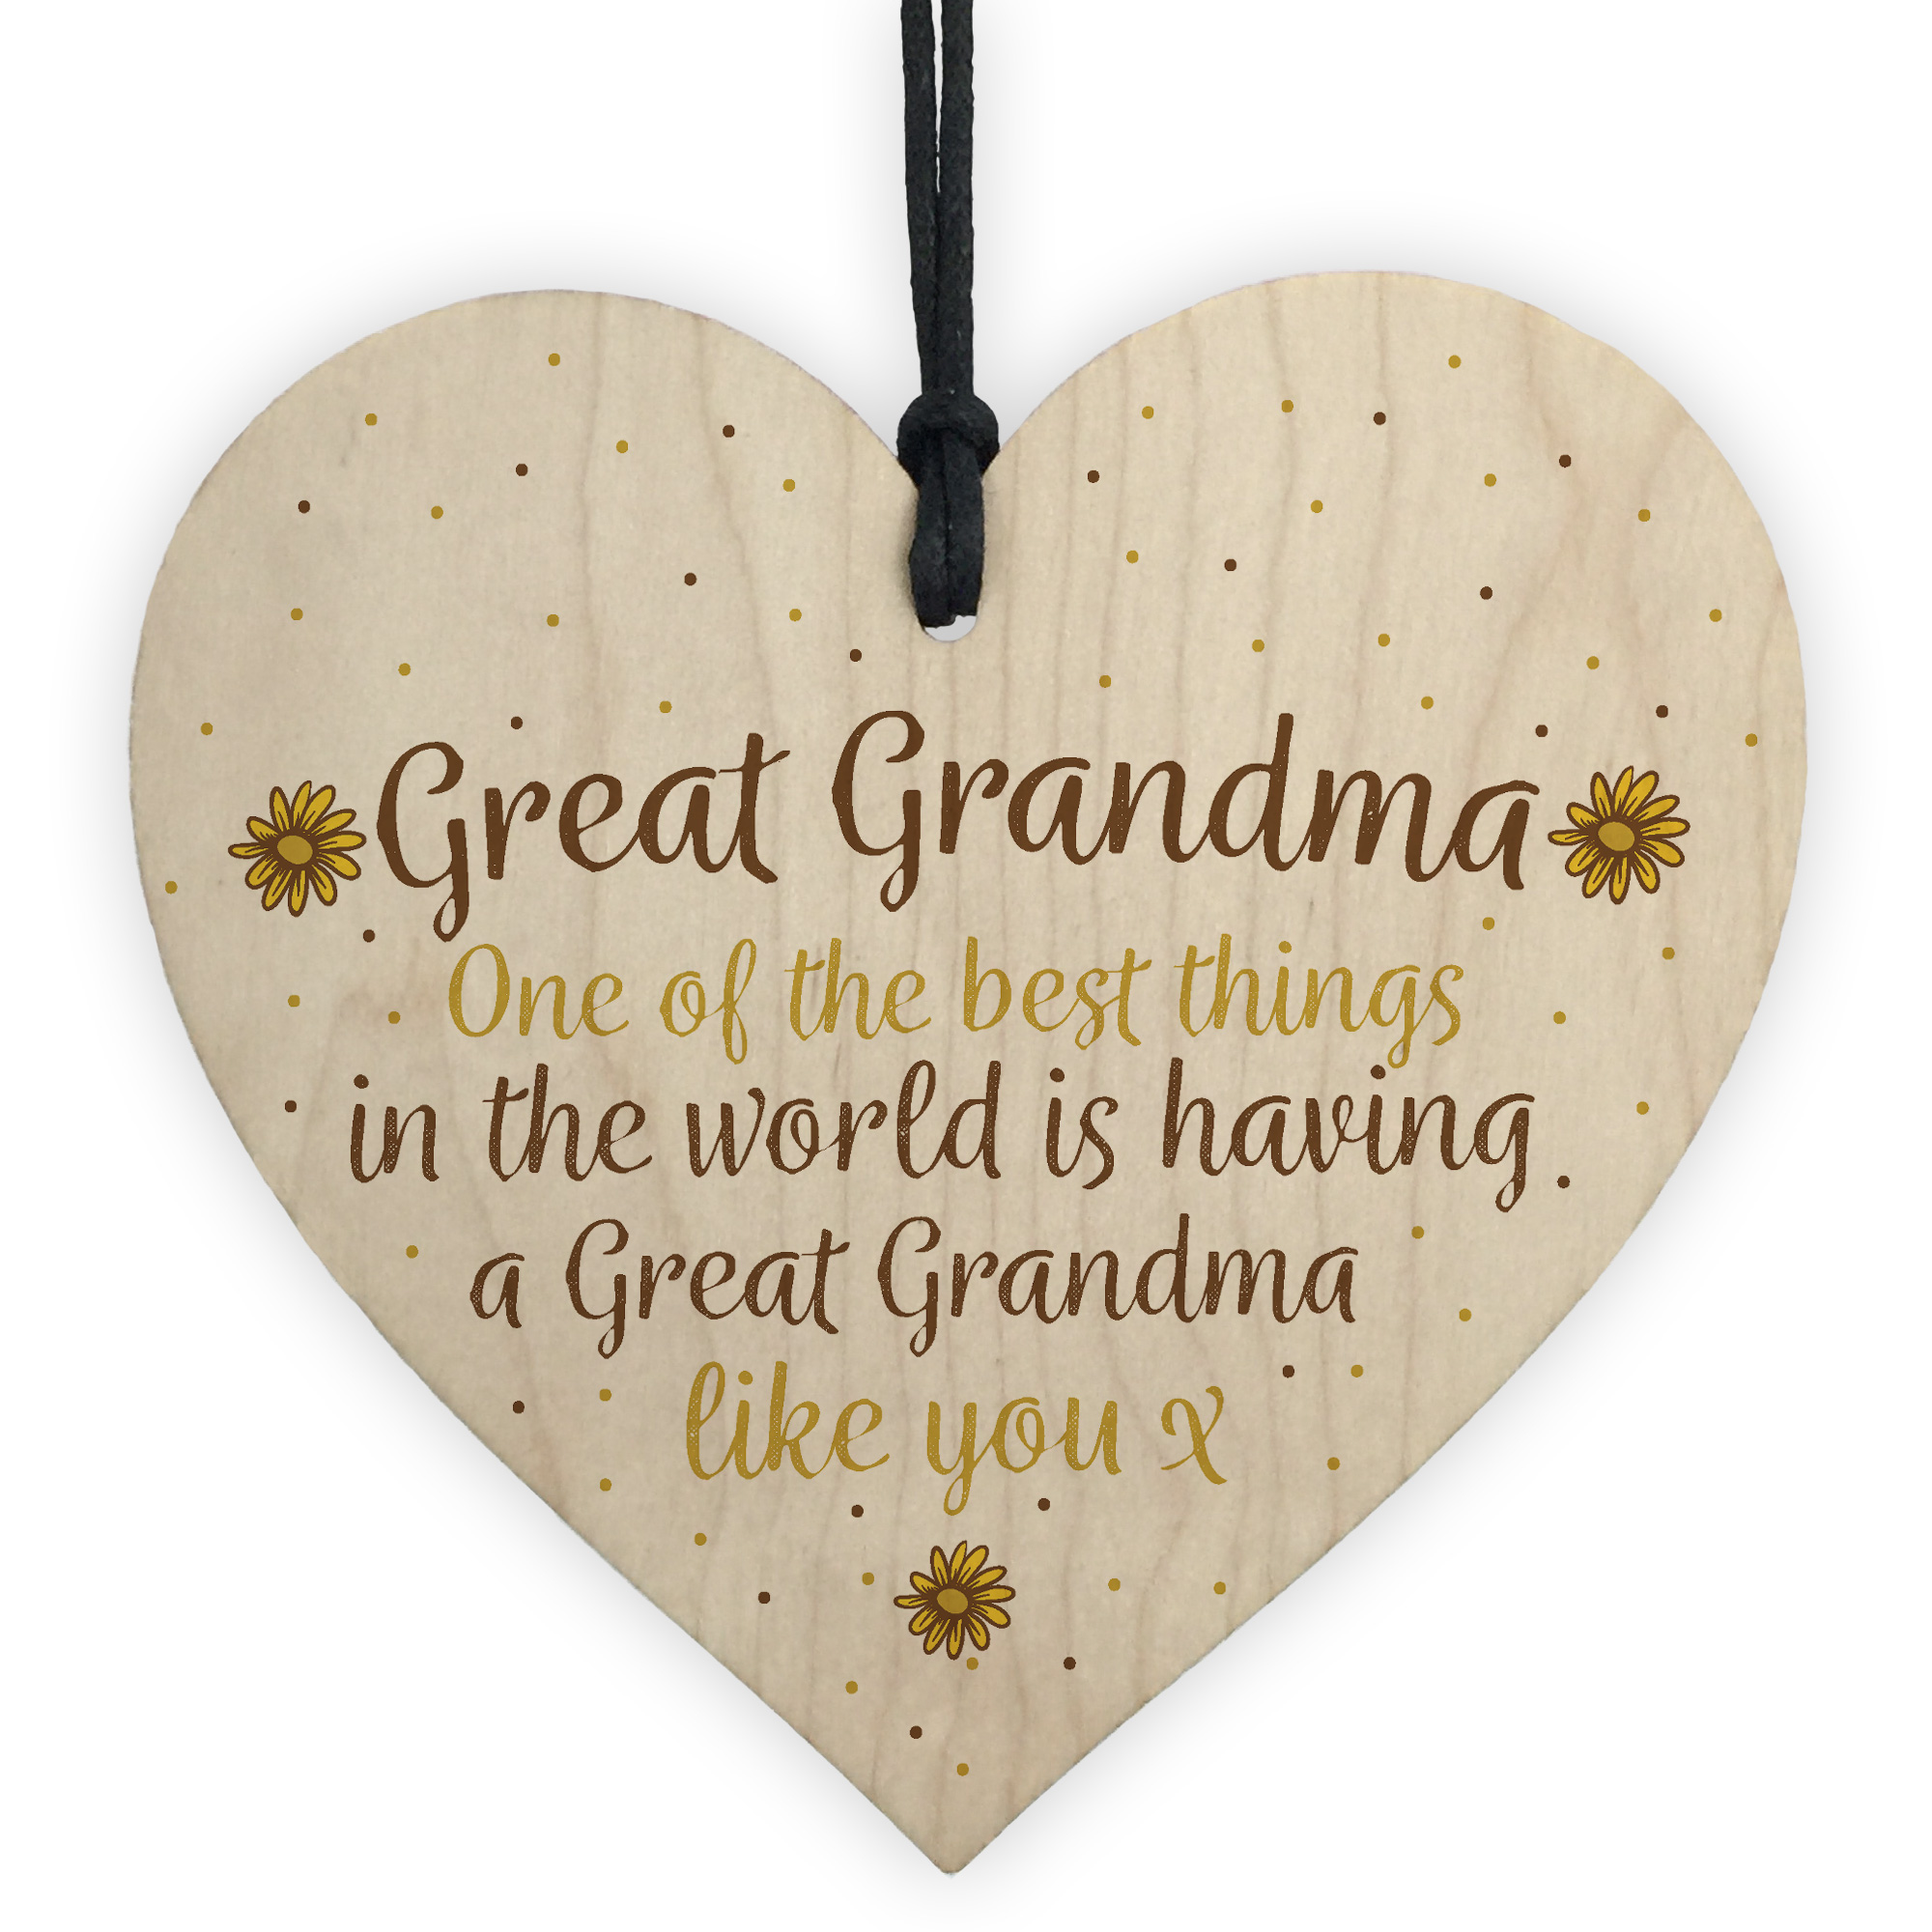 Details About Great Grandma Gift Wooden Heart Granparent Birthday For Her Gifts Women